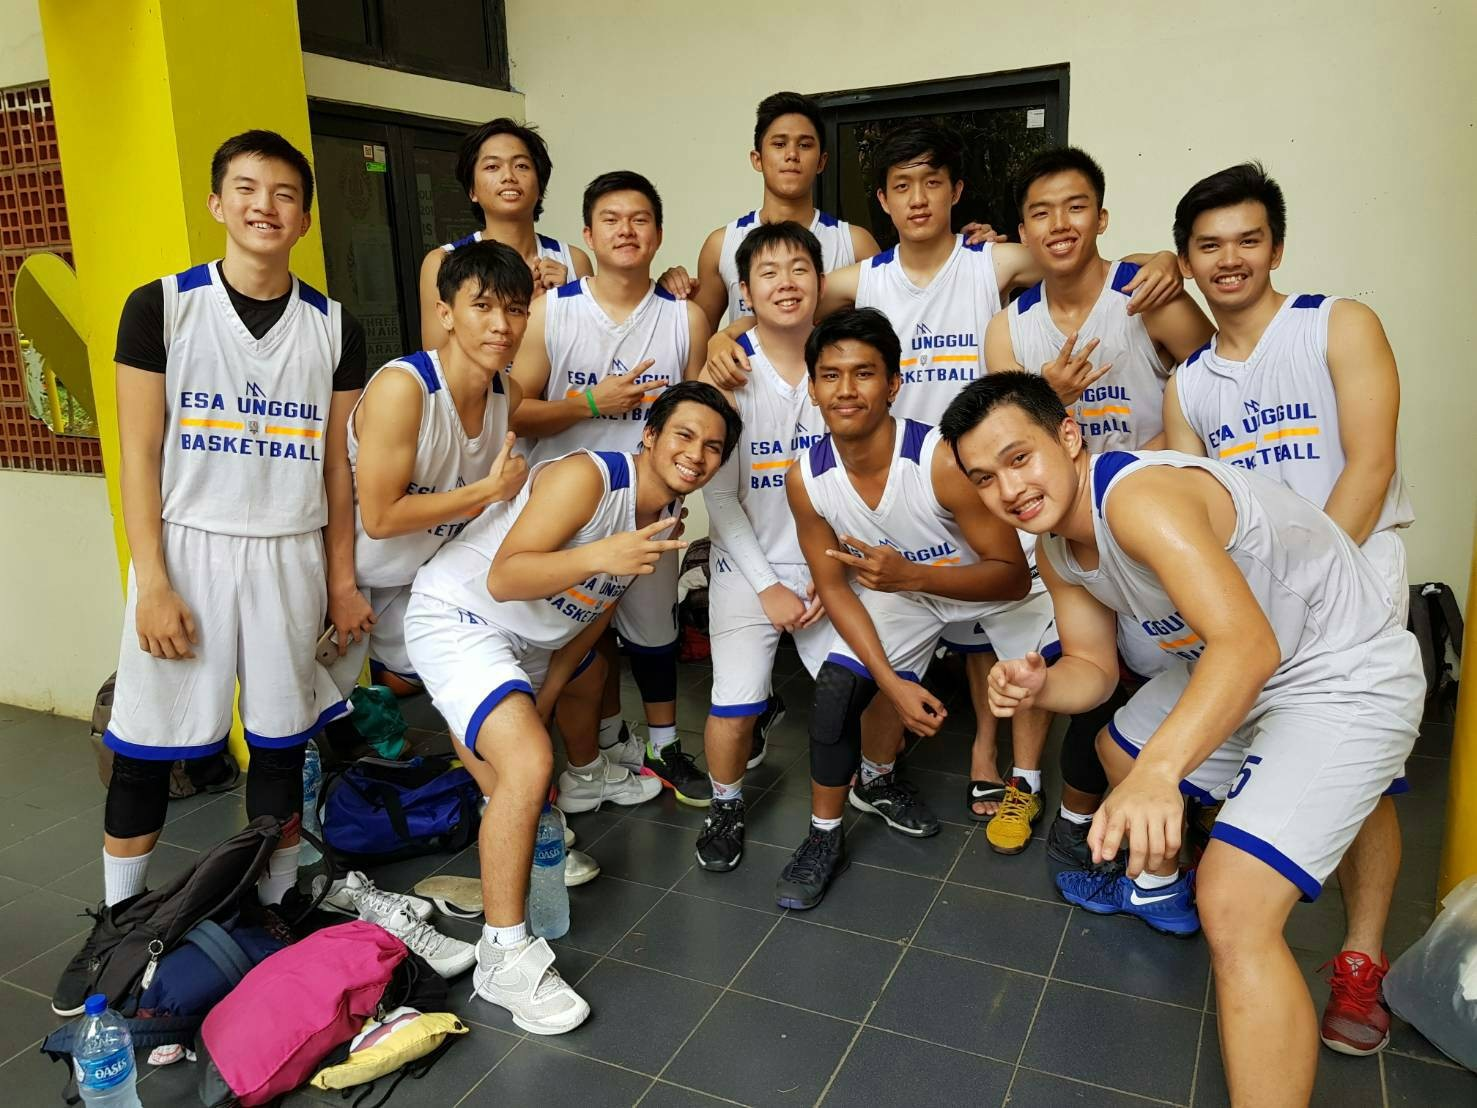 Tim Basket Putera Universitas Esa Unggul Runner Up di Universiade Universitas Indonesia 2017